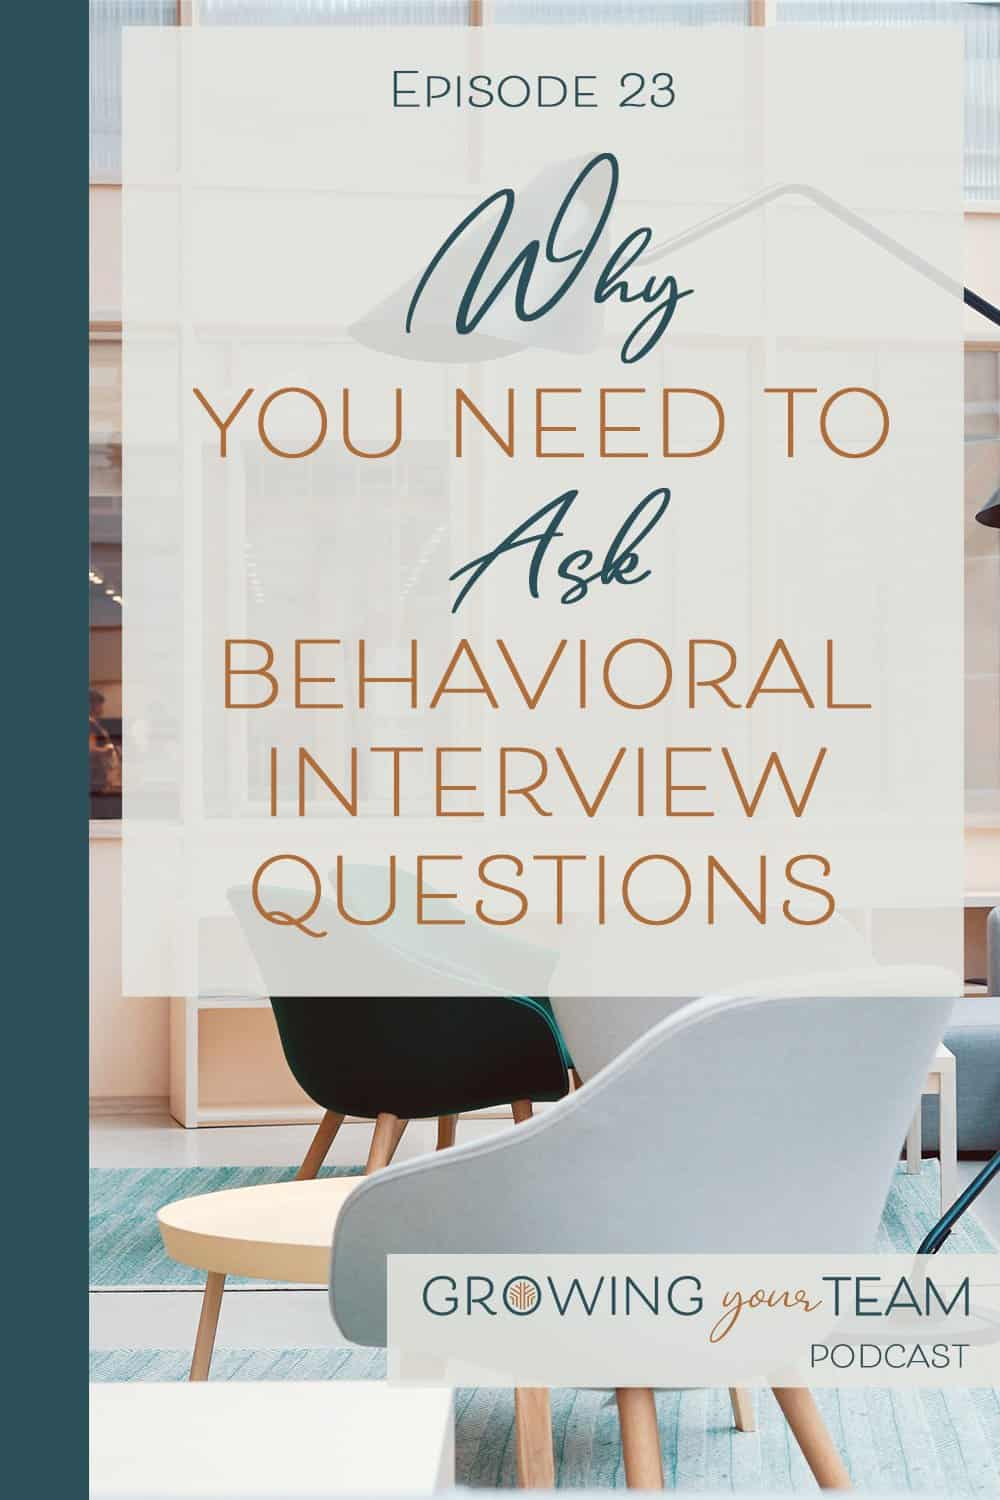 behavioral interview questions, Growing You Team Podcast, Jamie Van Cuyk, Small Business